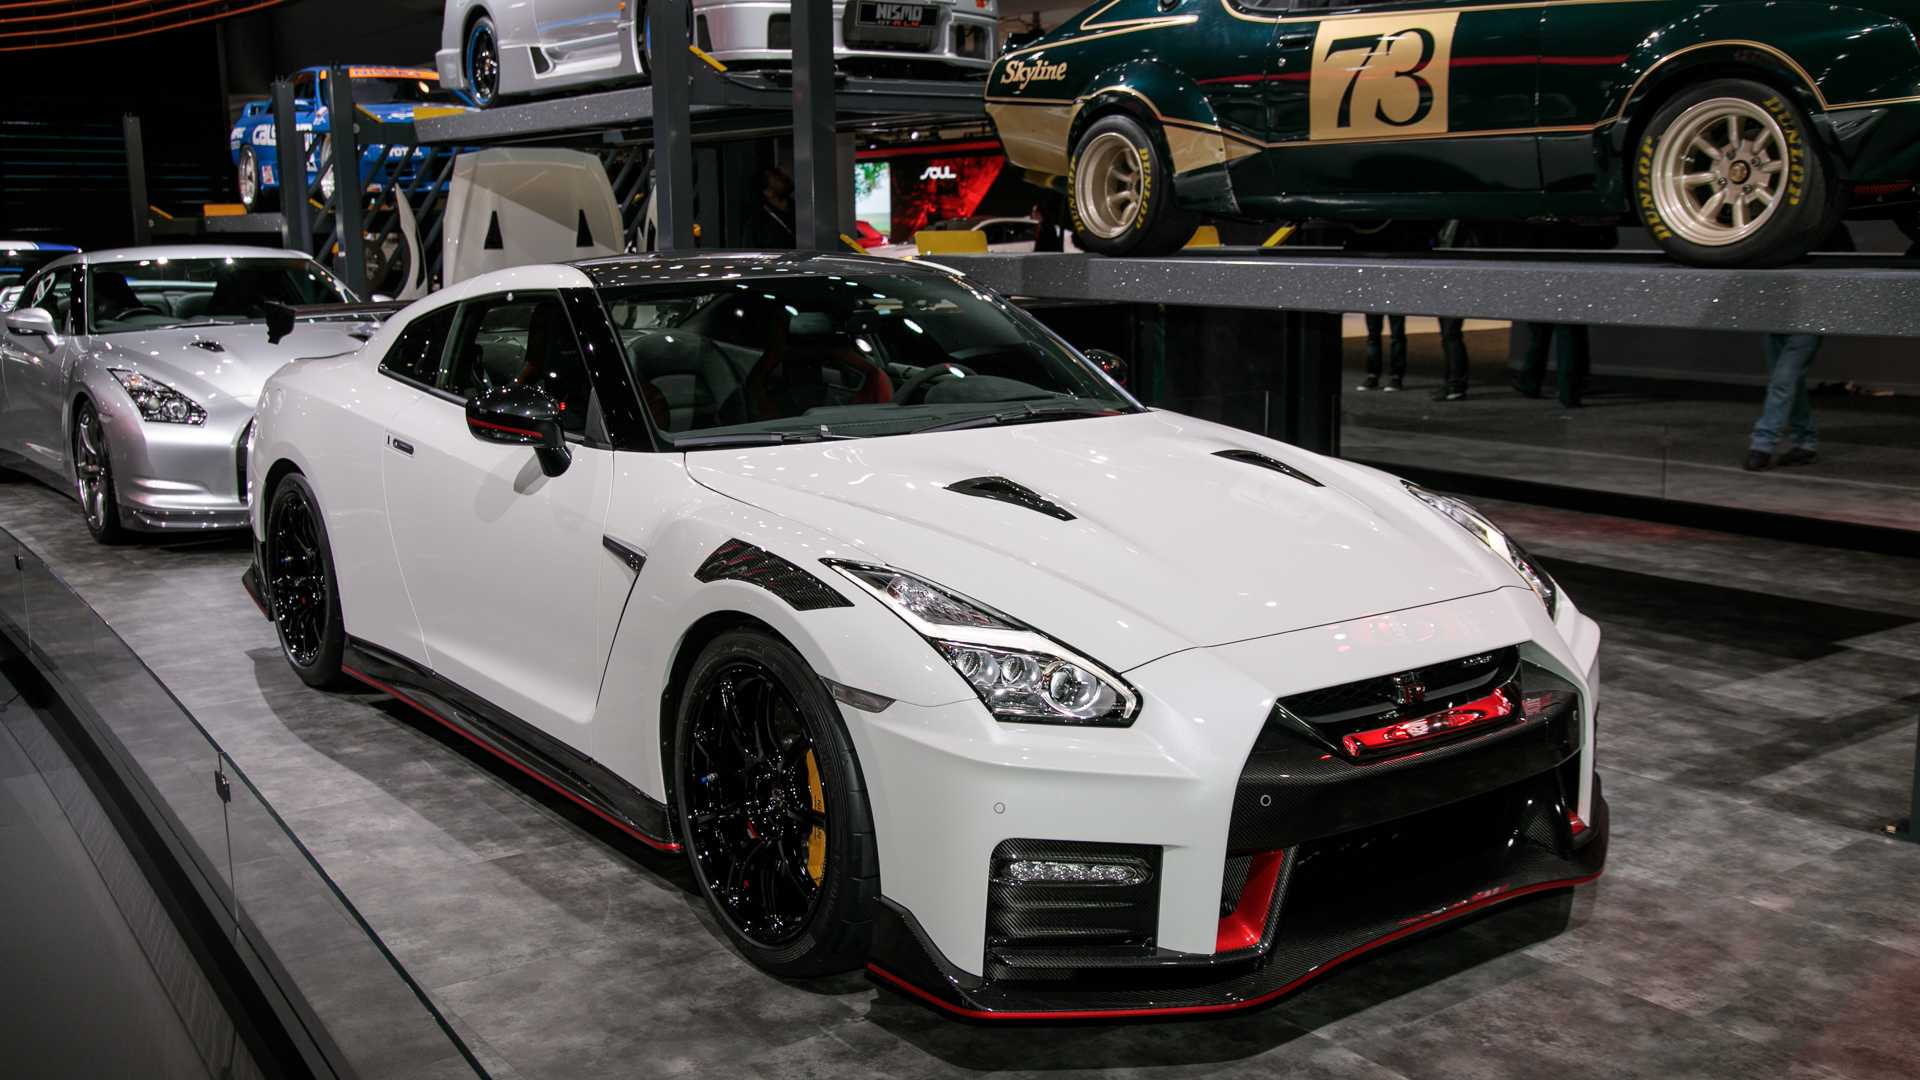 26 Gallery of Nissan Gt R 36 2020 Price Prices with Nissan Gt R 36 2020 Price